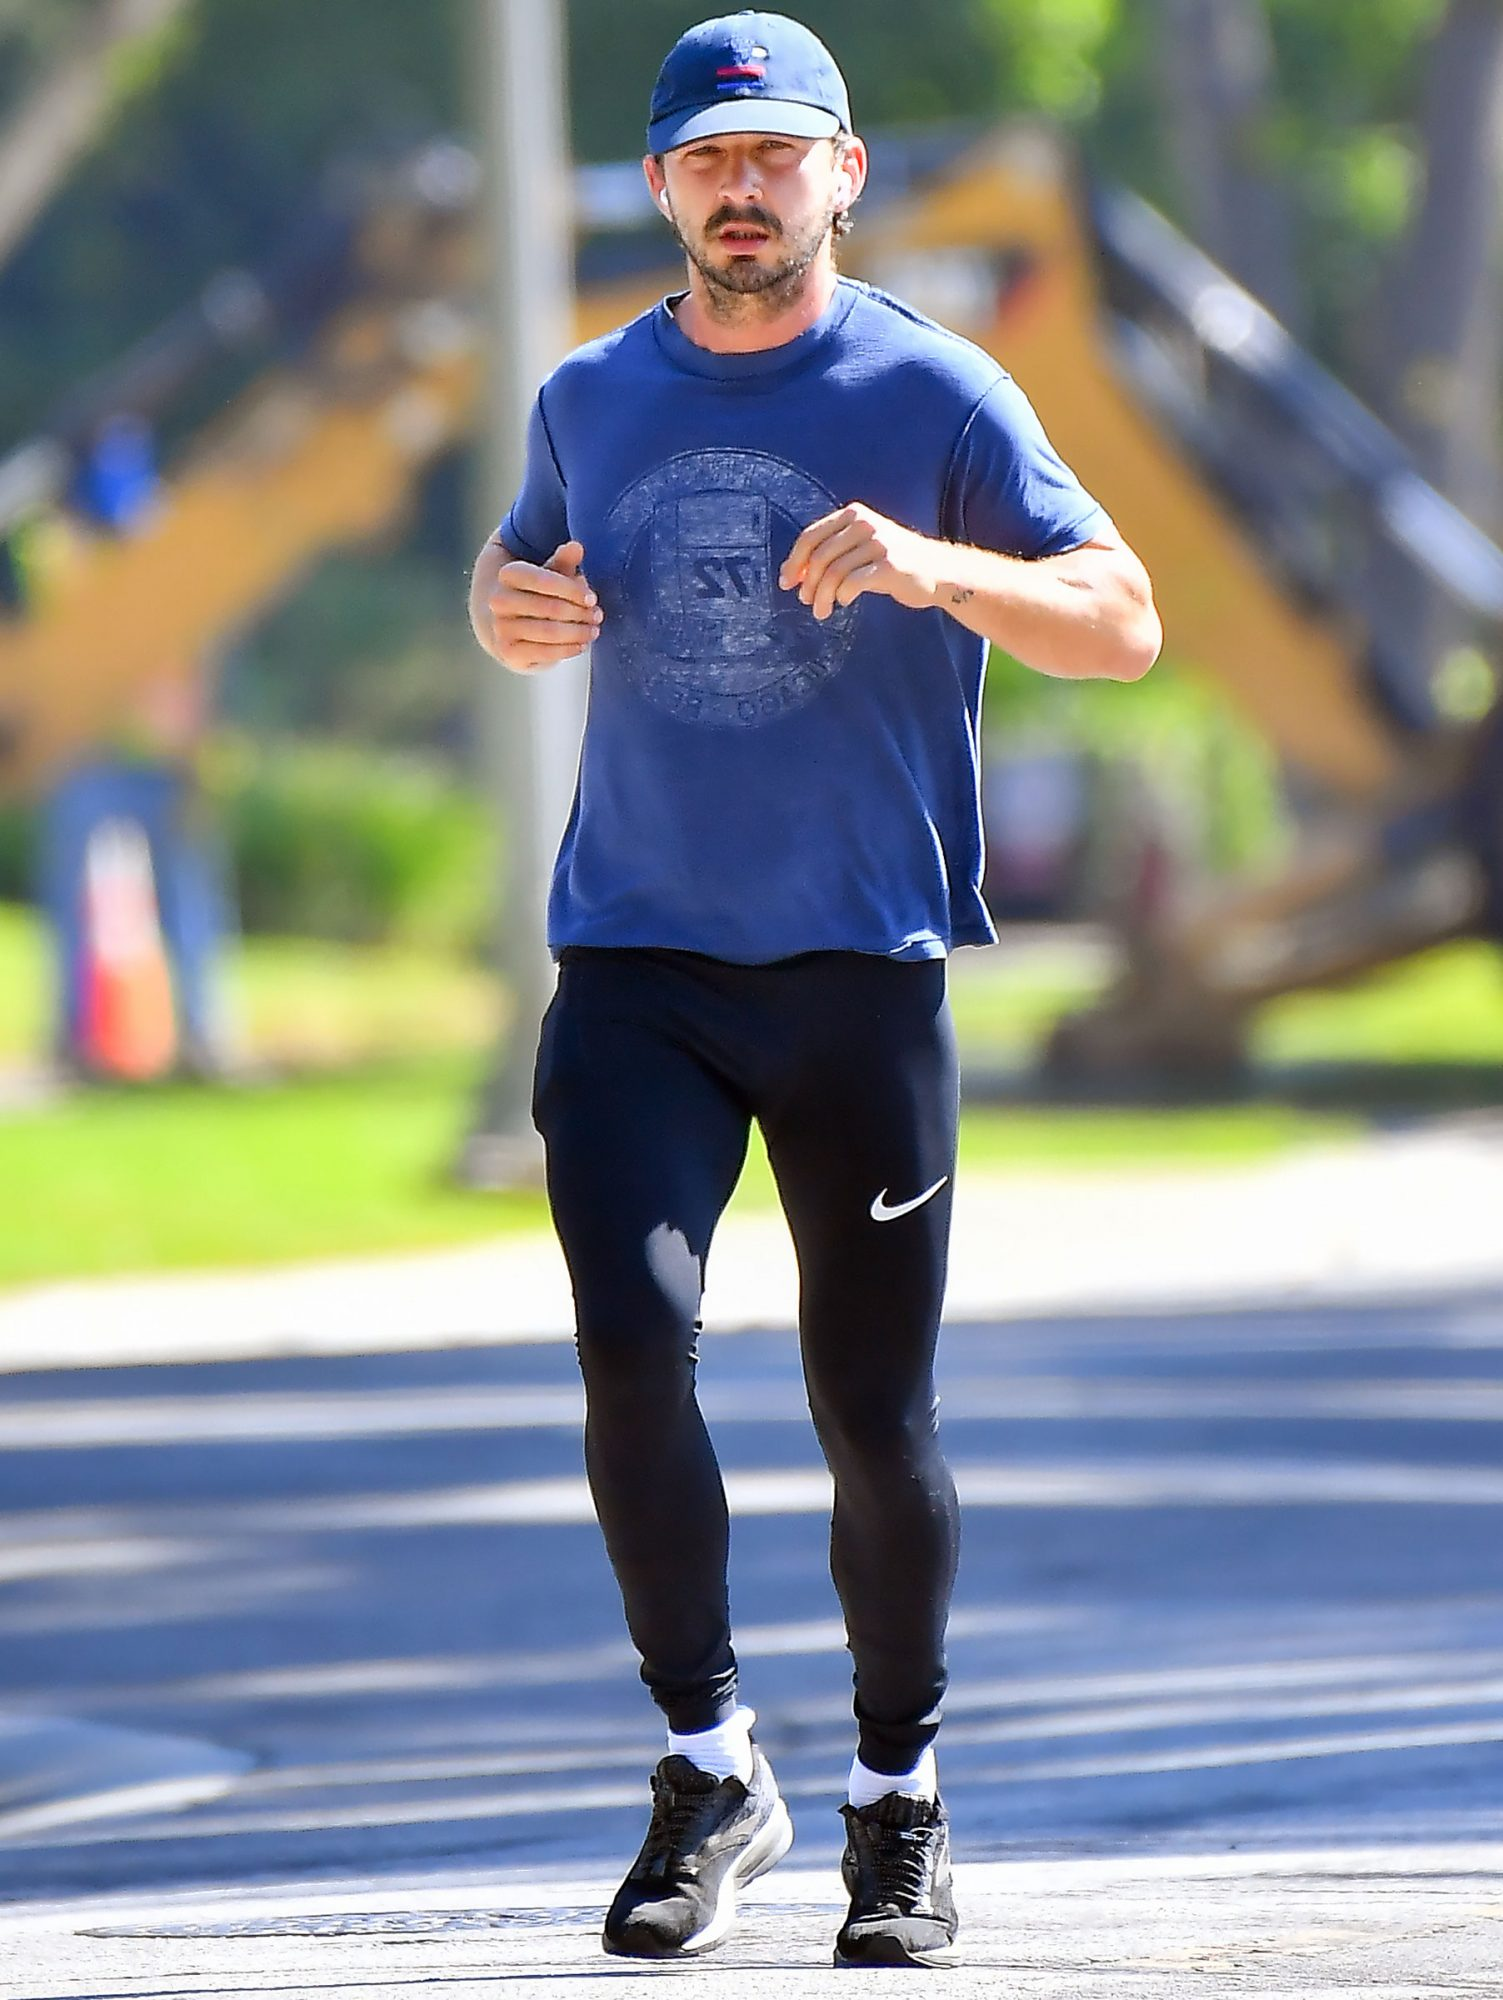 Shia LaBeouf heads out on a jog after being charged with battery and petty theft